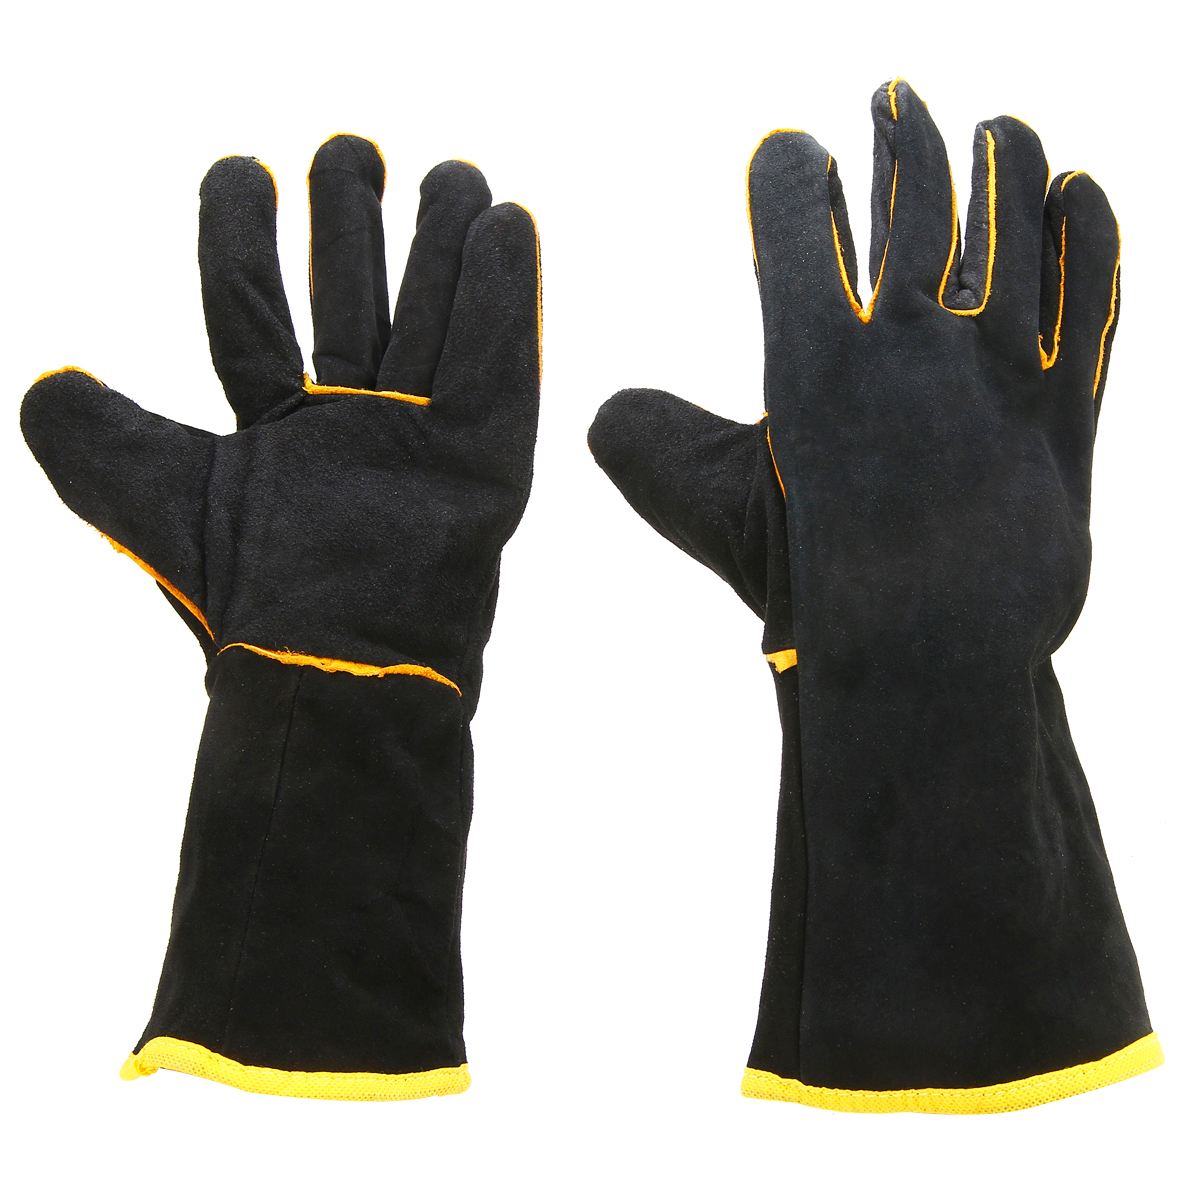 1 Pair Heavy Duty Welding Gloves Cowhide Black Mig Welding Gauntlets Welders Leather Gloves Heat-resistant Protection